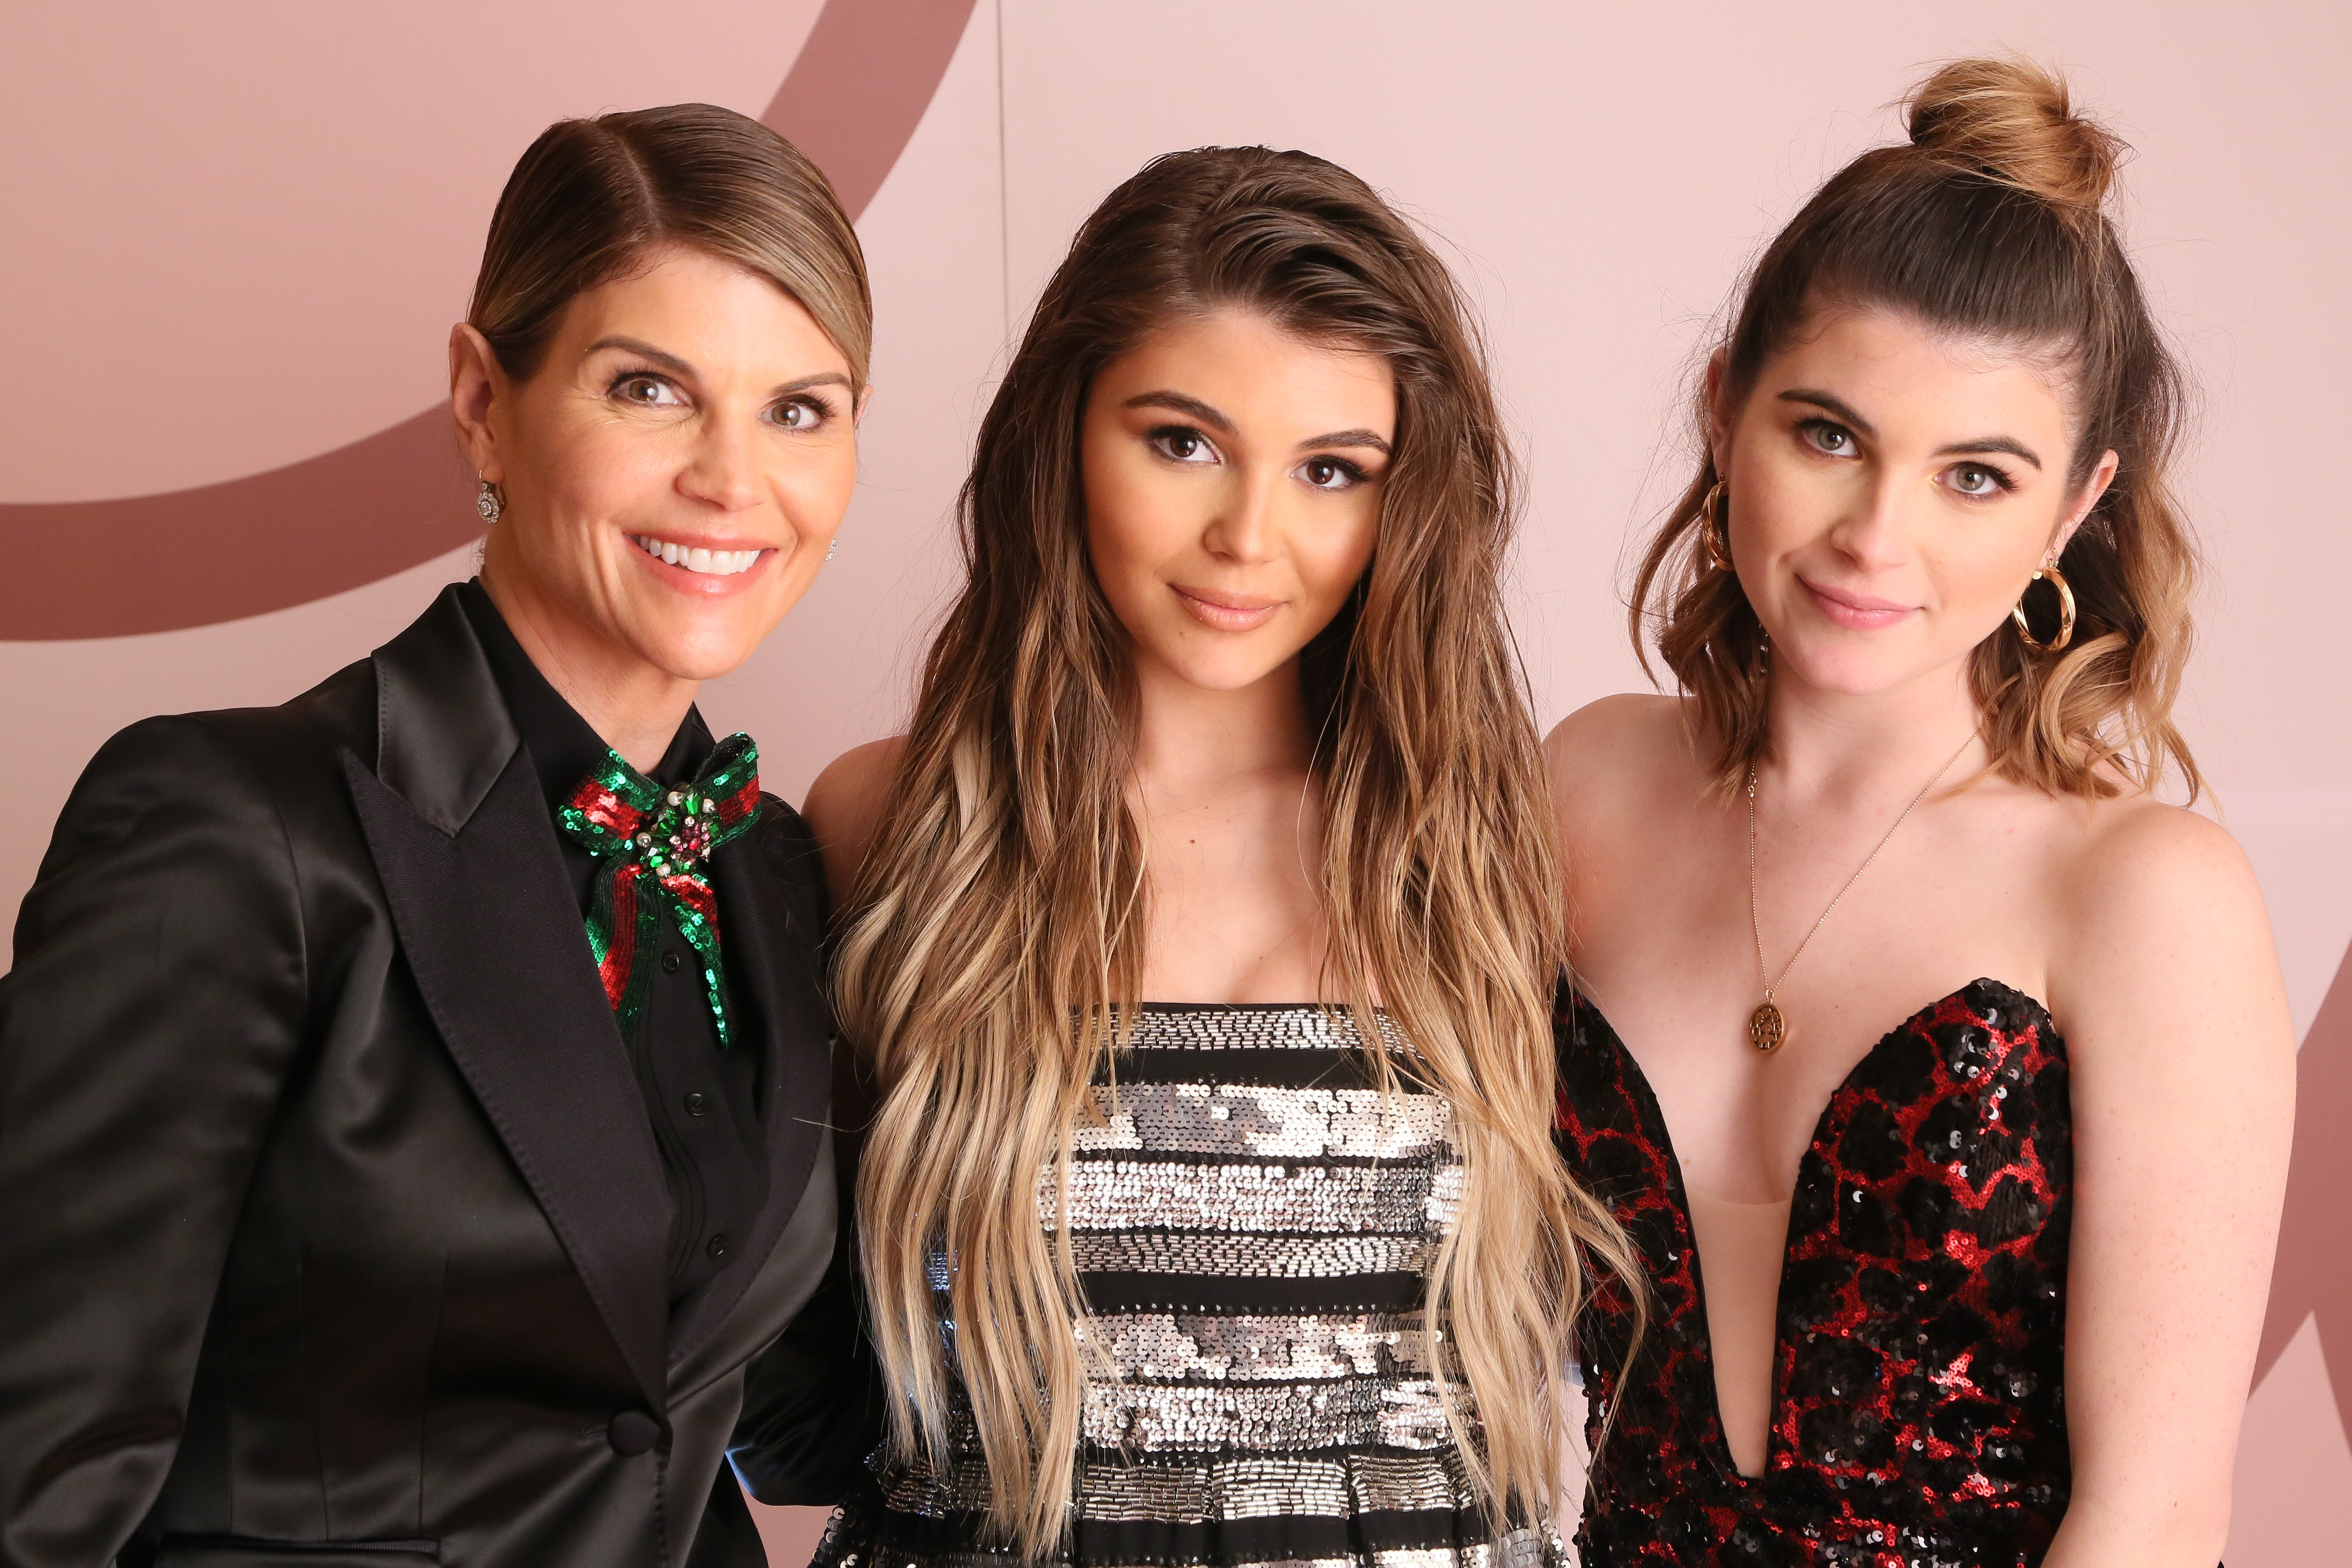 Lori Loughlin and daughters Olivia Jade and Isabella Rose Giannulli at the Olivia Jade X Sephora Collection Palette Collaboration Launching Online at Sephora.com on December 14, 2018 in West Hollywood, California. | Source: Getty